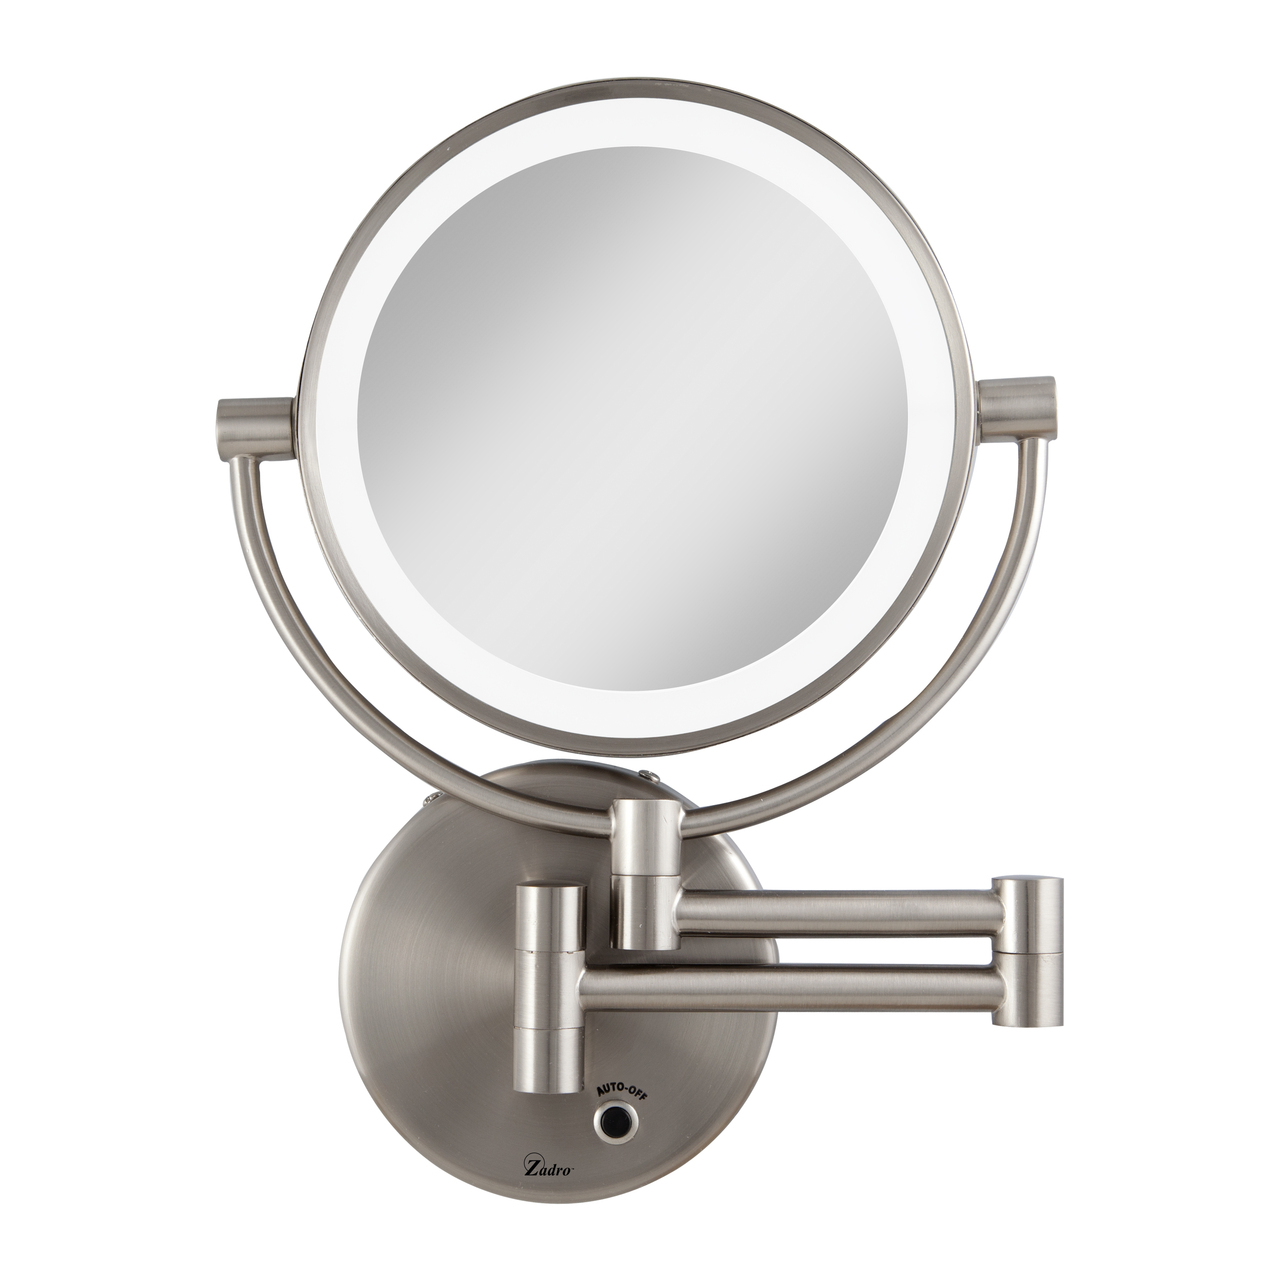 15x Magnifying Mirror | Best Lighted Makeup Mirror | Lighted Makeup Mirror Bed Bath and Beyond